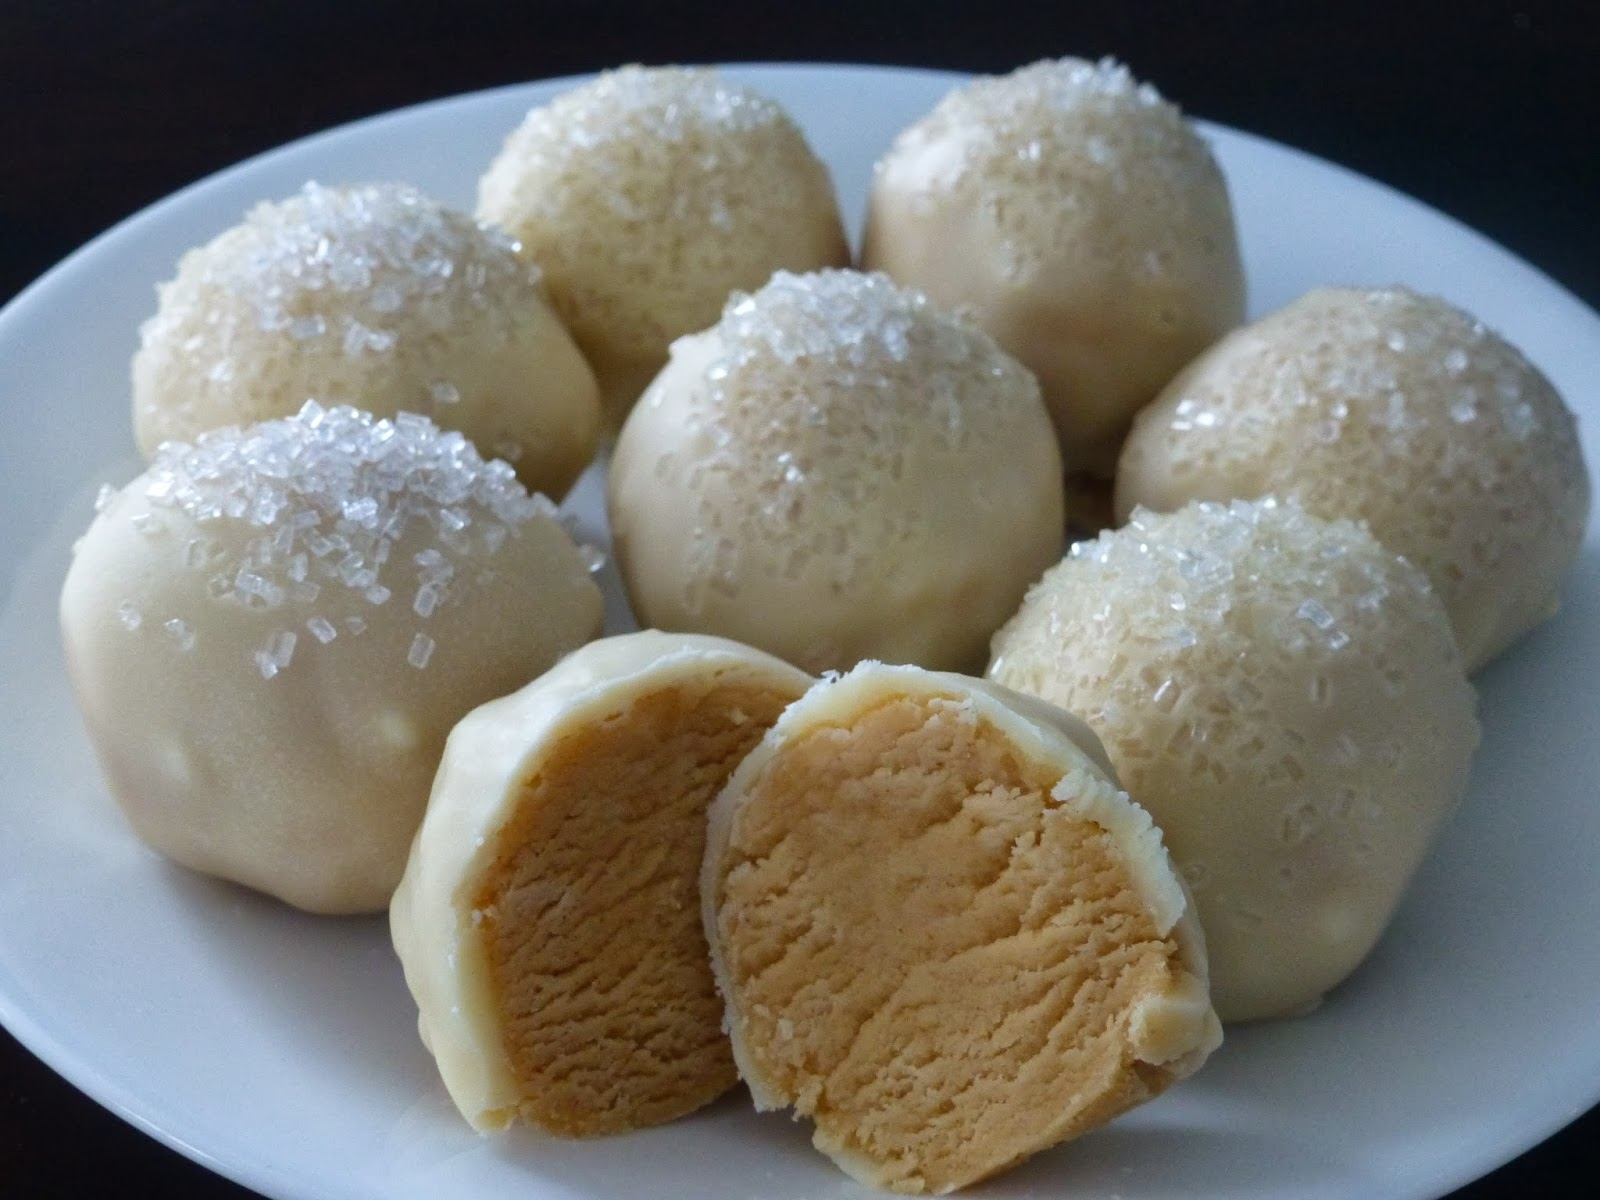 ... Days of Holiday Goodies! Day 2 ~ White Chocolate Peanut Butter Balls